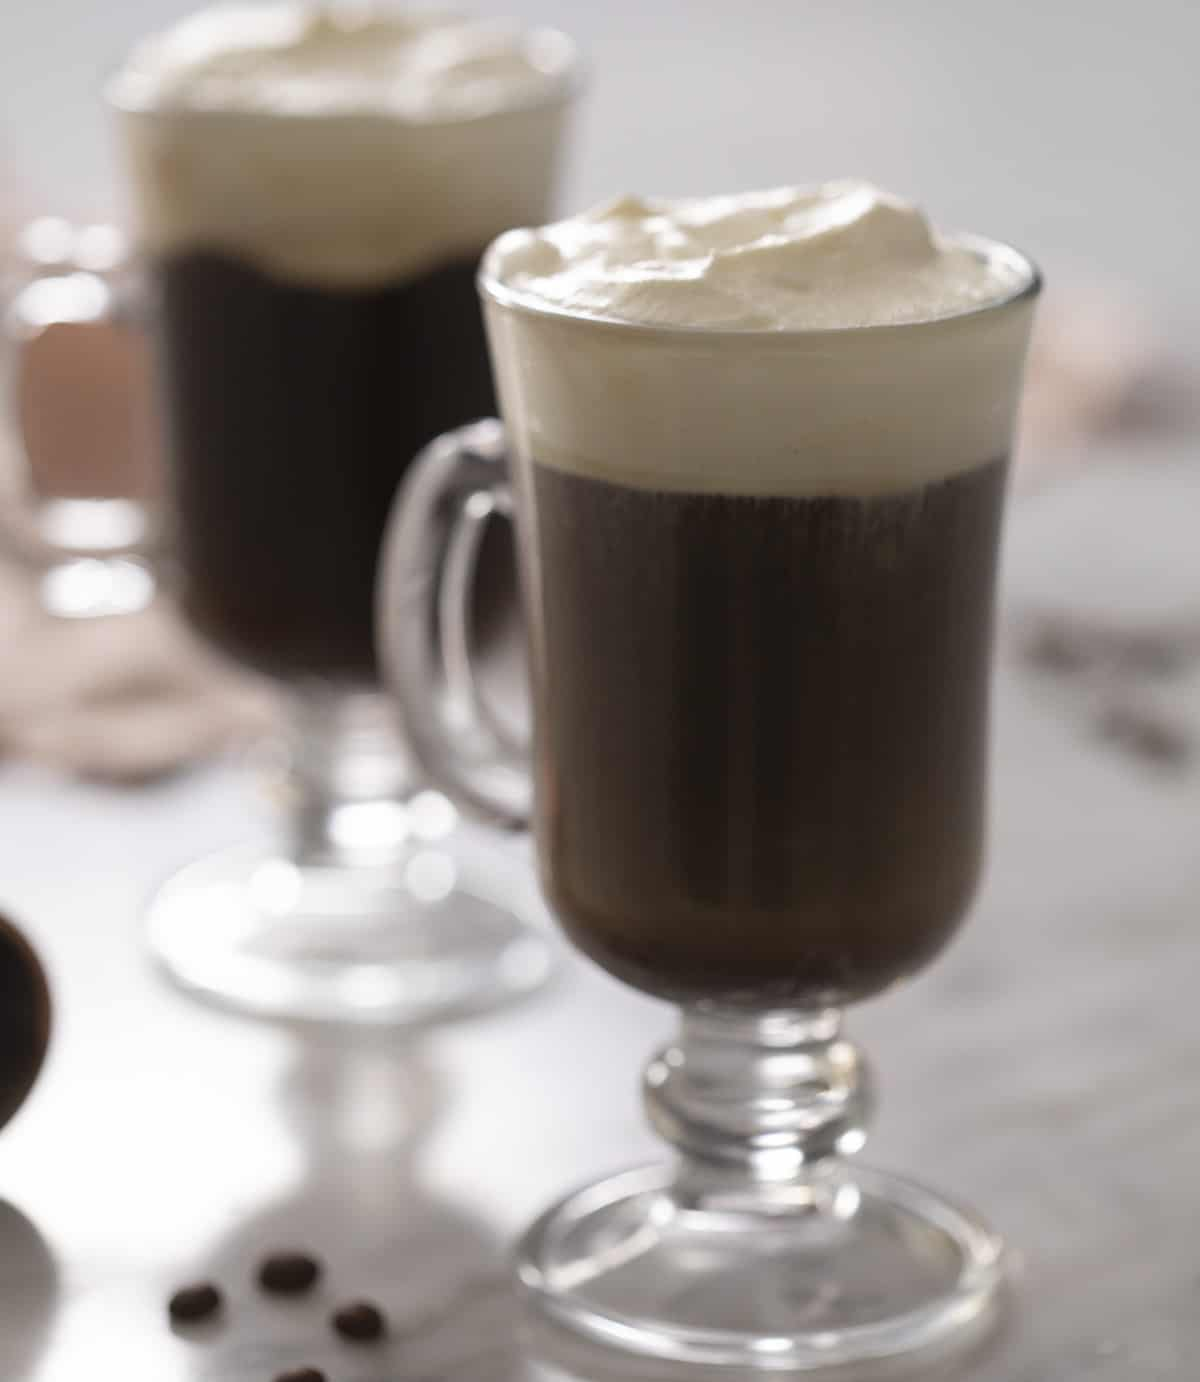 A close up of an Irish coffee in a glass mug